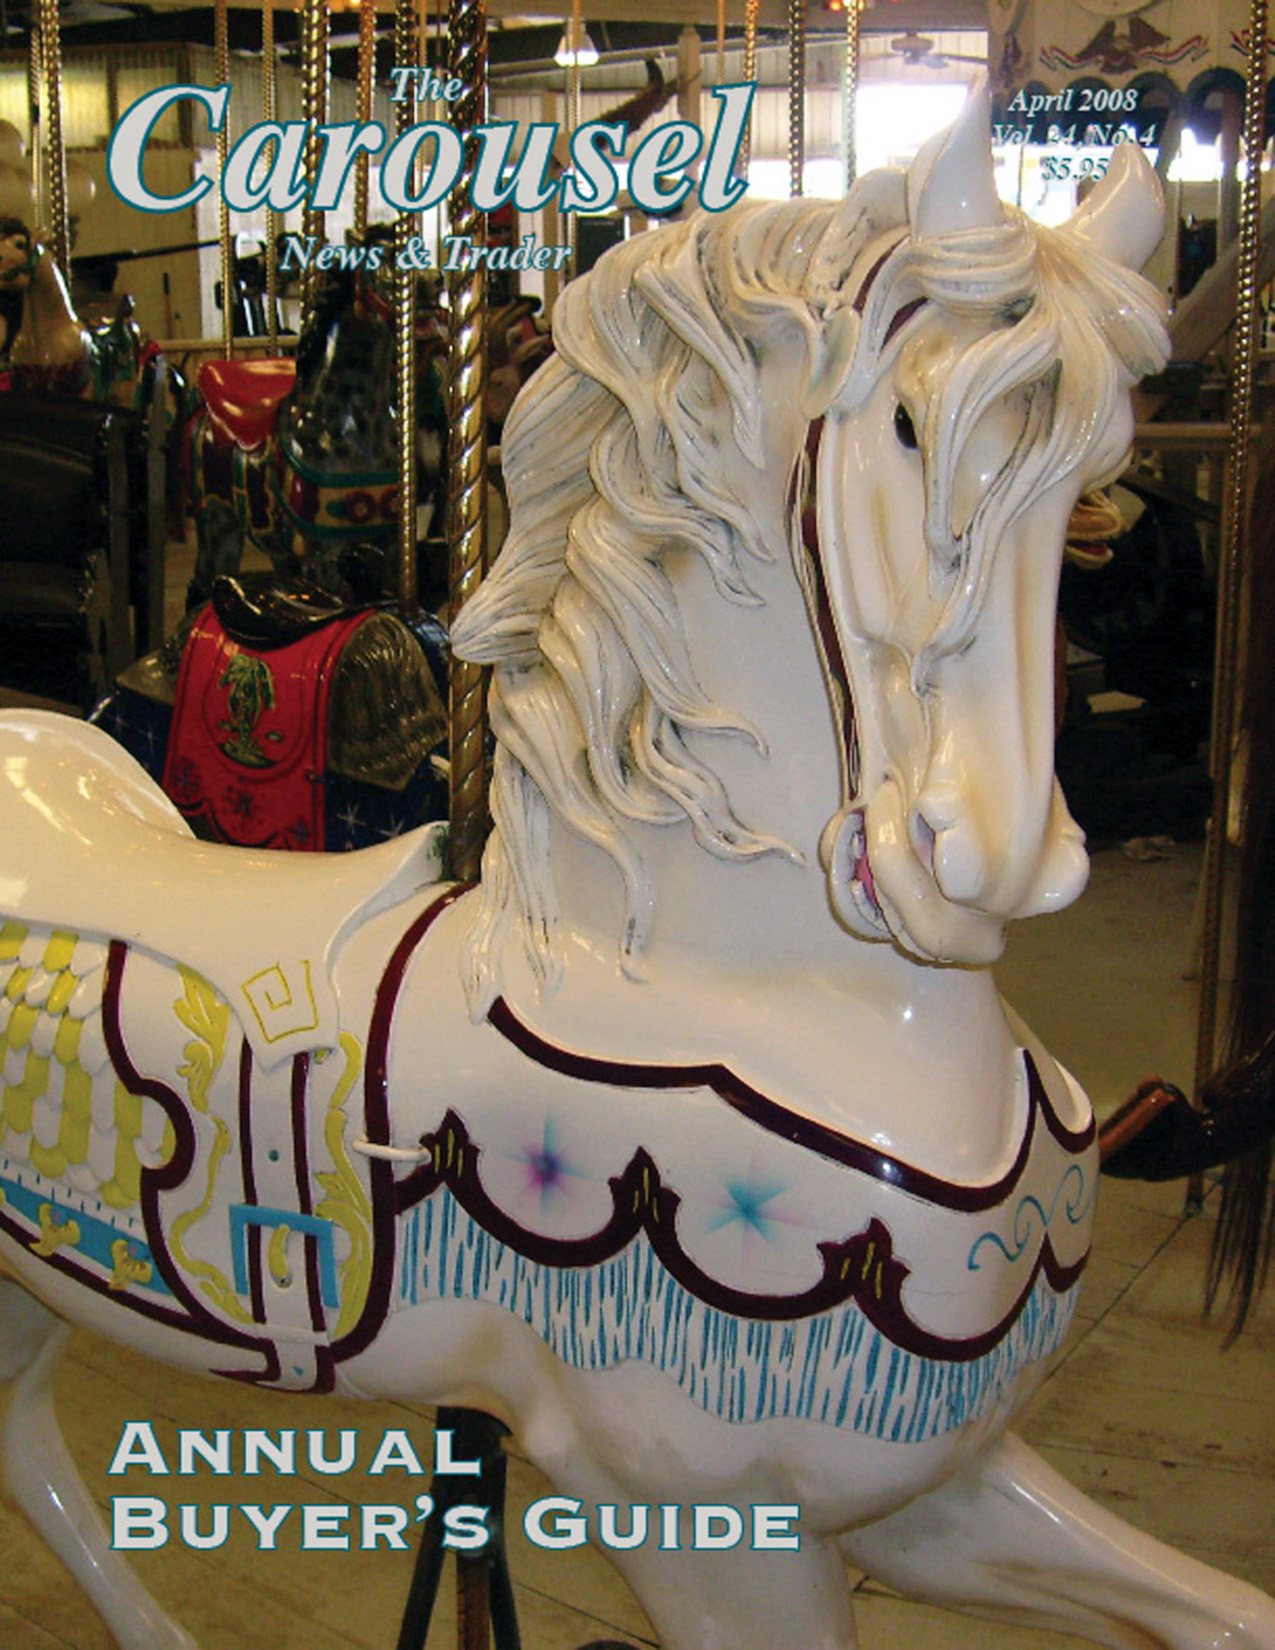 Carousel-news-cover-4-Harveys-Lake-carousel-April-2008